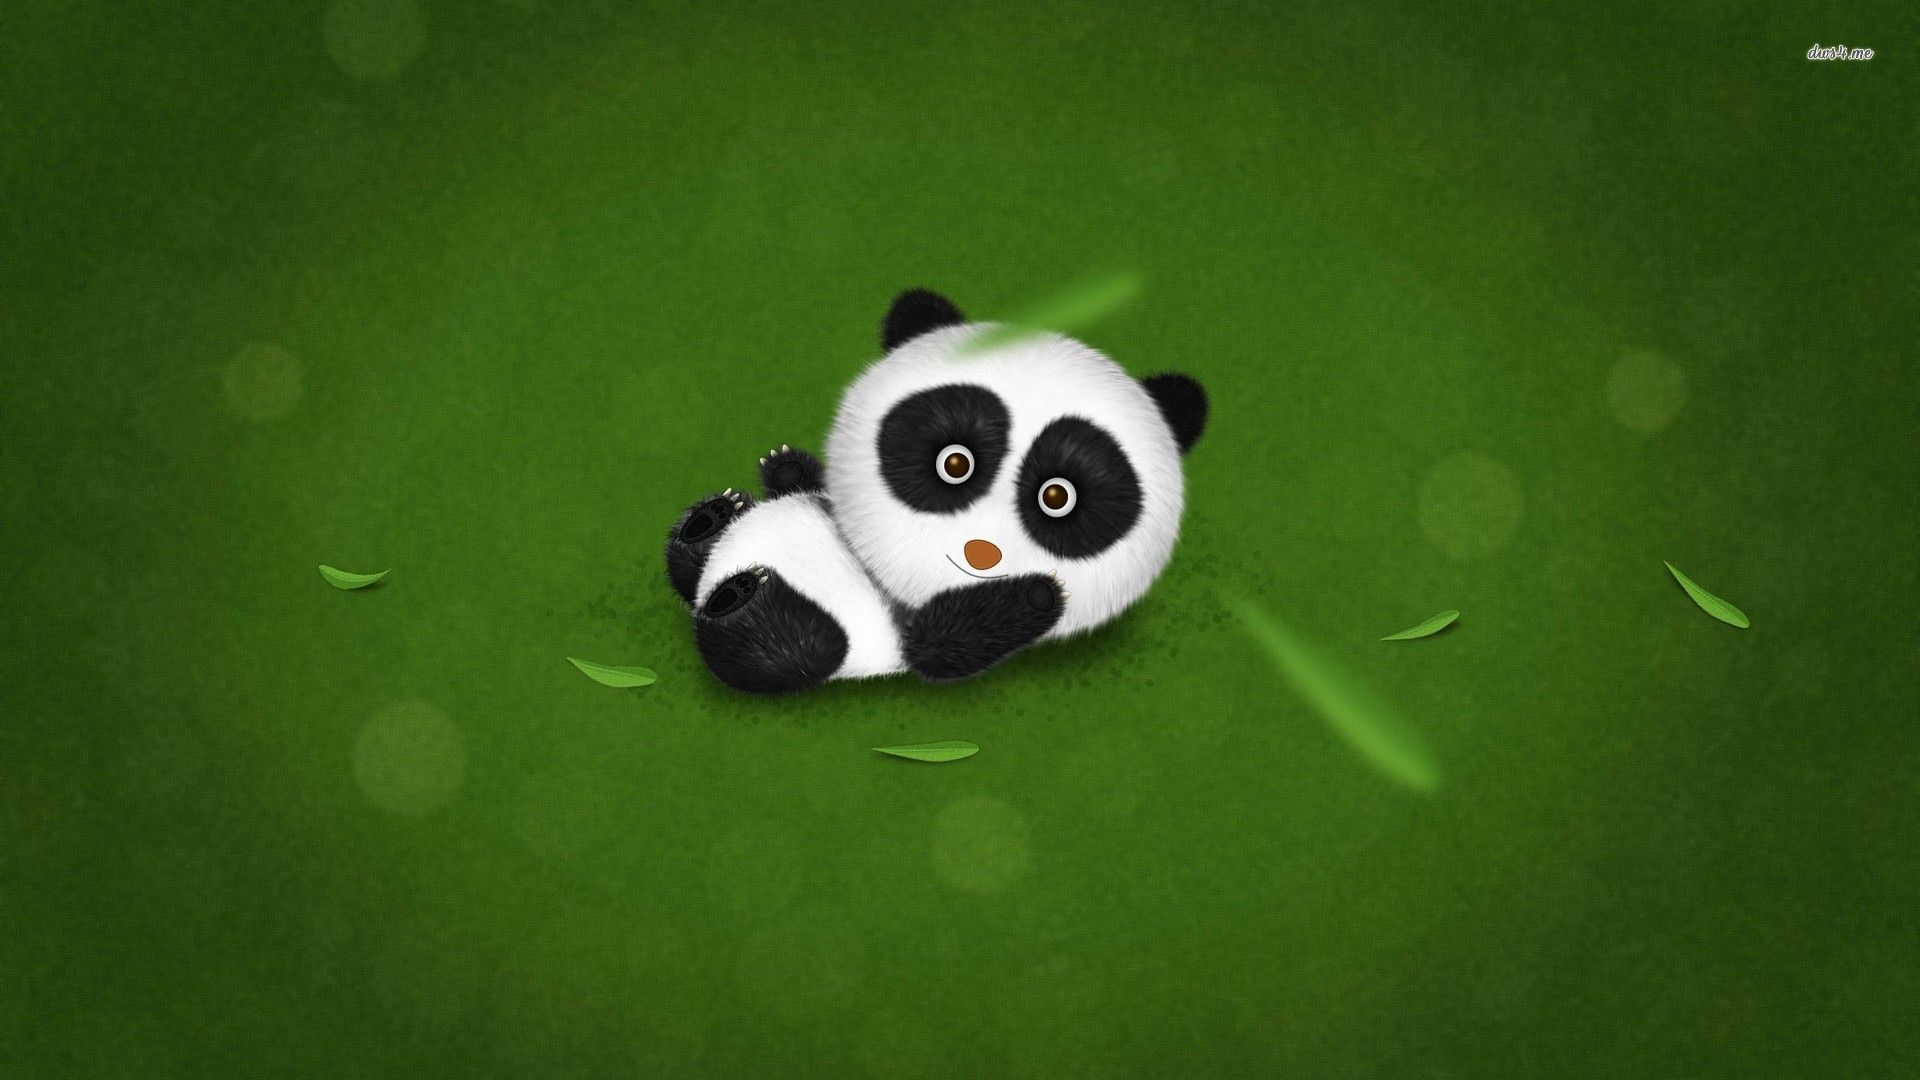 Mobile Phone  Panda Wallpapers HD, Desktop Backgrounds 1920x1080